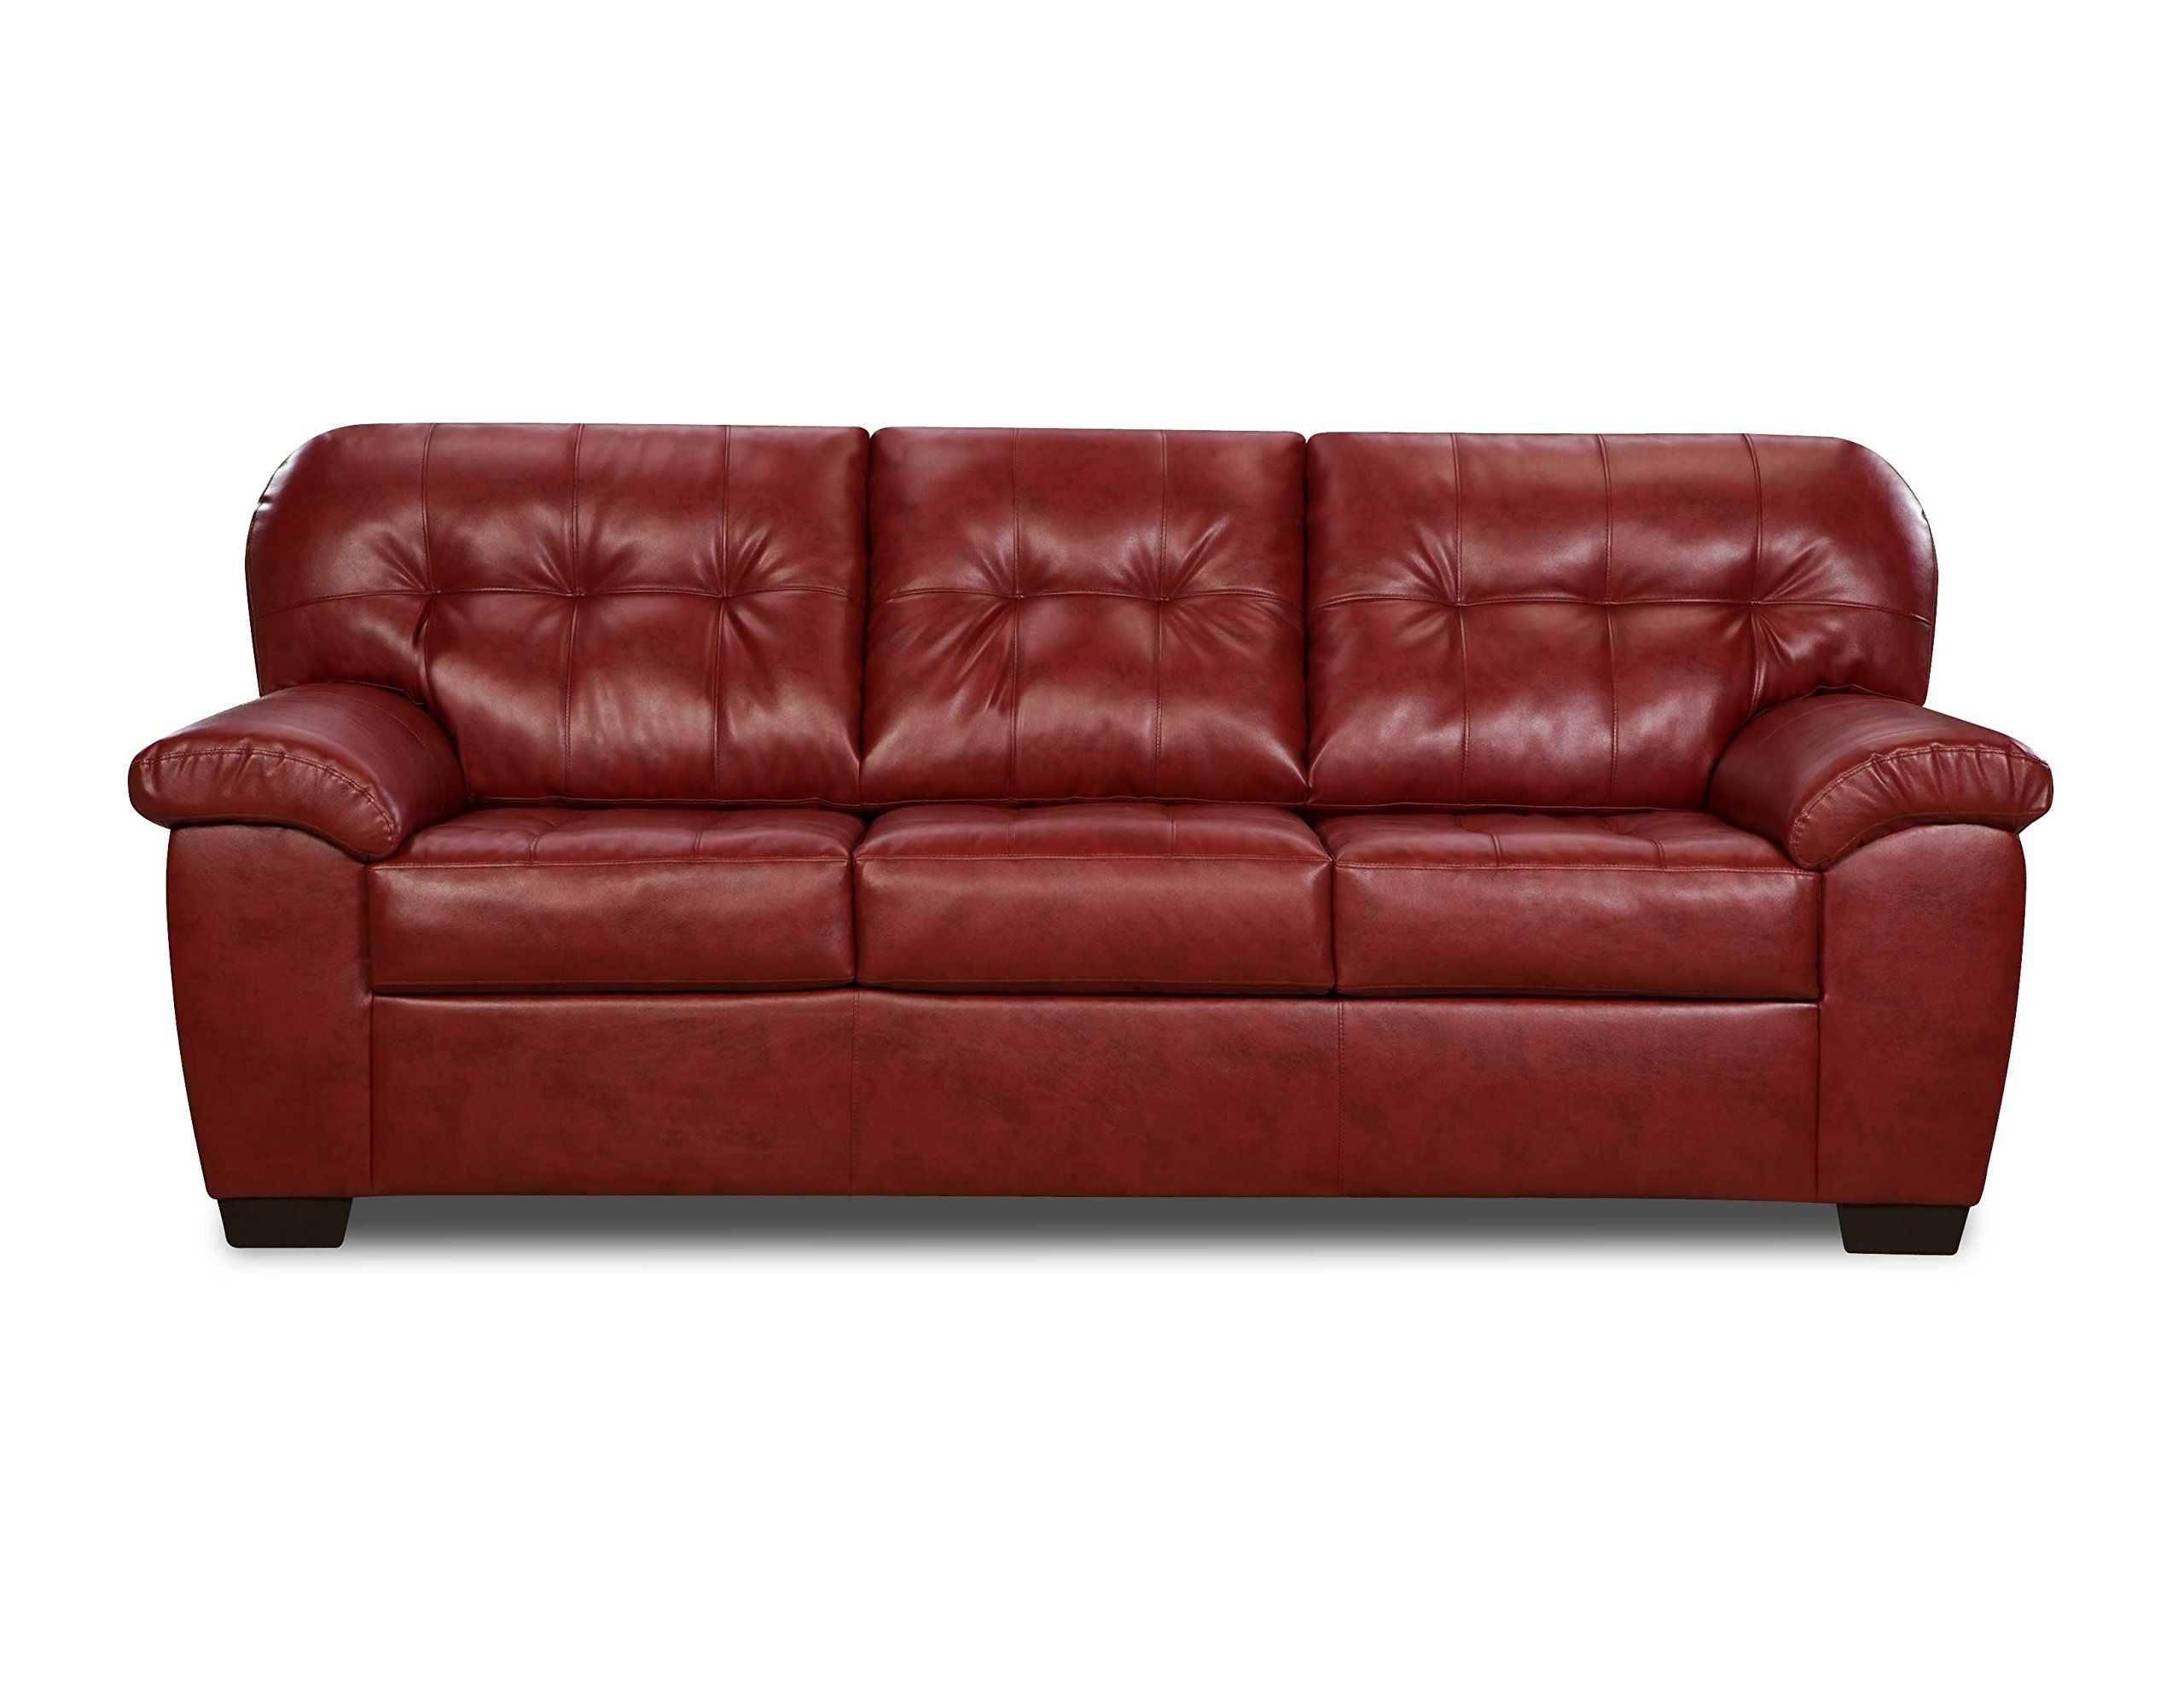 Simmons Upholstery 956903 Soho Cardinal Bonded Leather Sofa Click On The Image For Additional Details Affiliate Link